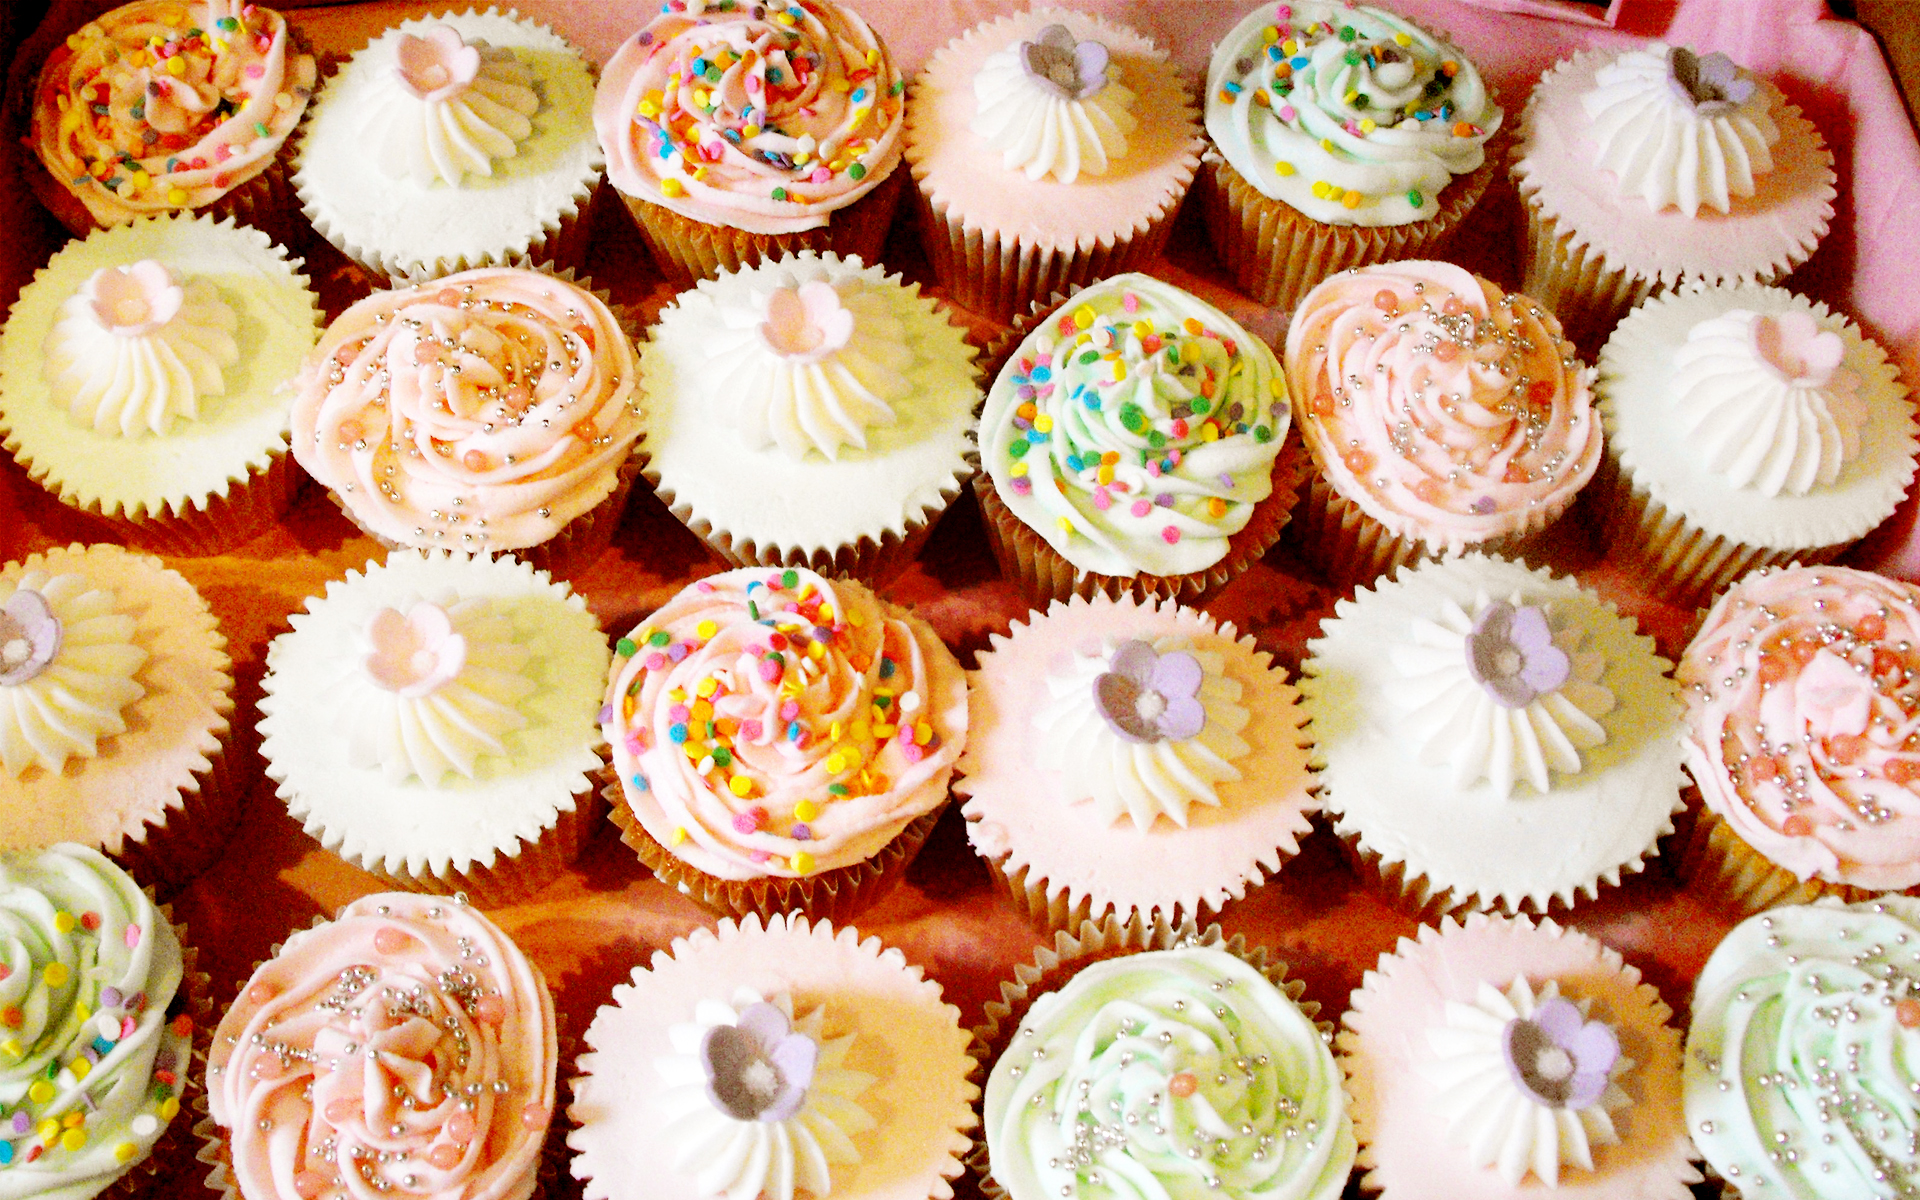 Cupcake Background 36366 1920x1200 px HDWallSourcecom